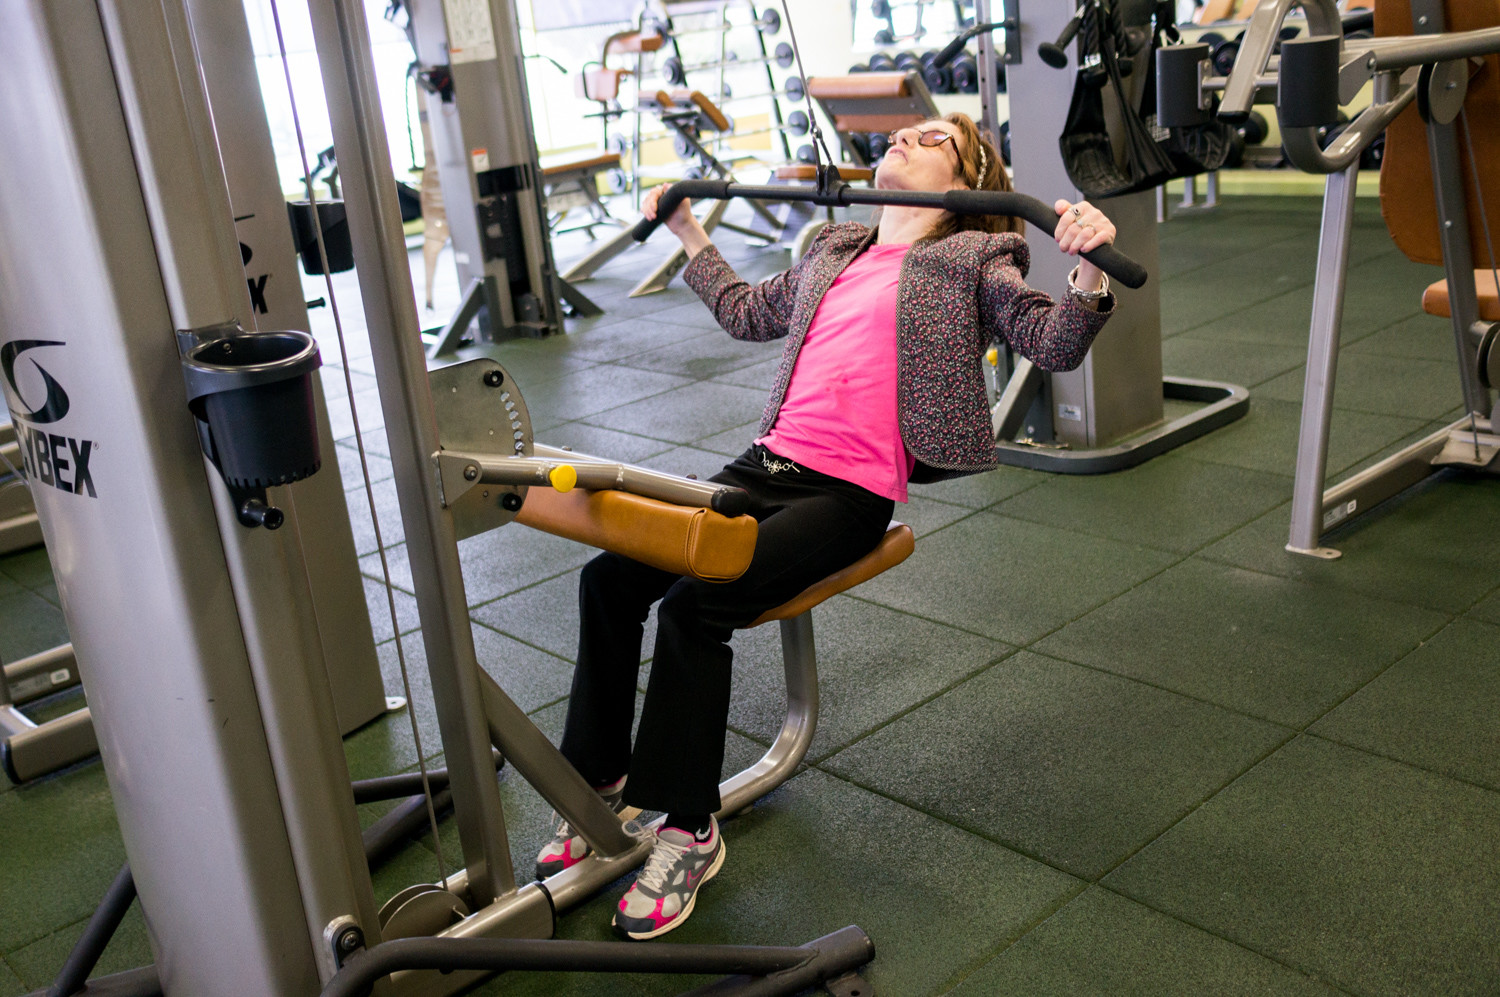 'This is my mom's favorite,' said Judy Fettman, an Ashkenazi Jewish woman, of the lat pull-down machine. Fettman has familial dysautonomia, a genetic disorder more prevalent in the Ashkenazi community than in the general population. She calls North Riverdale's Skyview-on-the-Hudson co-op home, where she lives in an apartment a couple floors down from her parents.